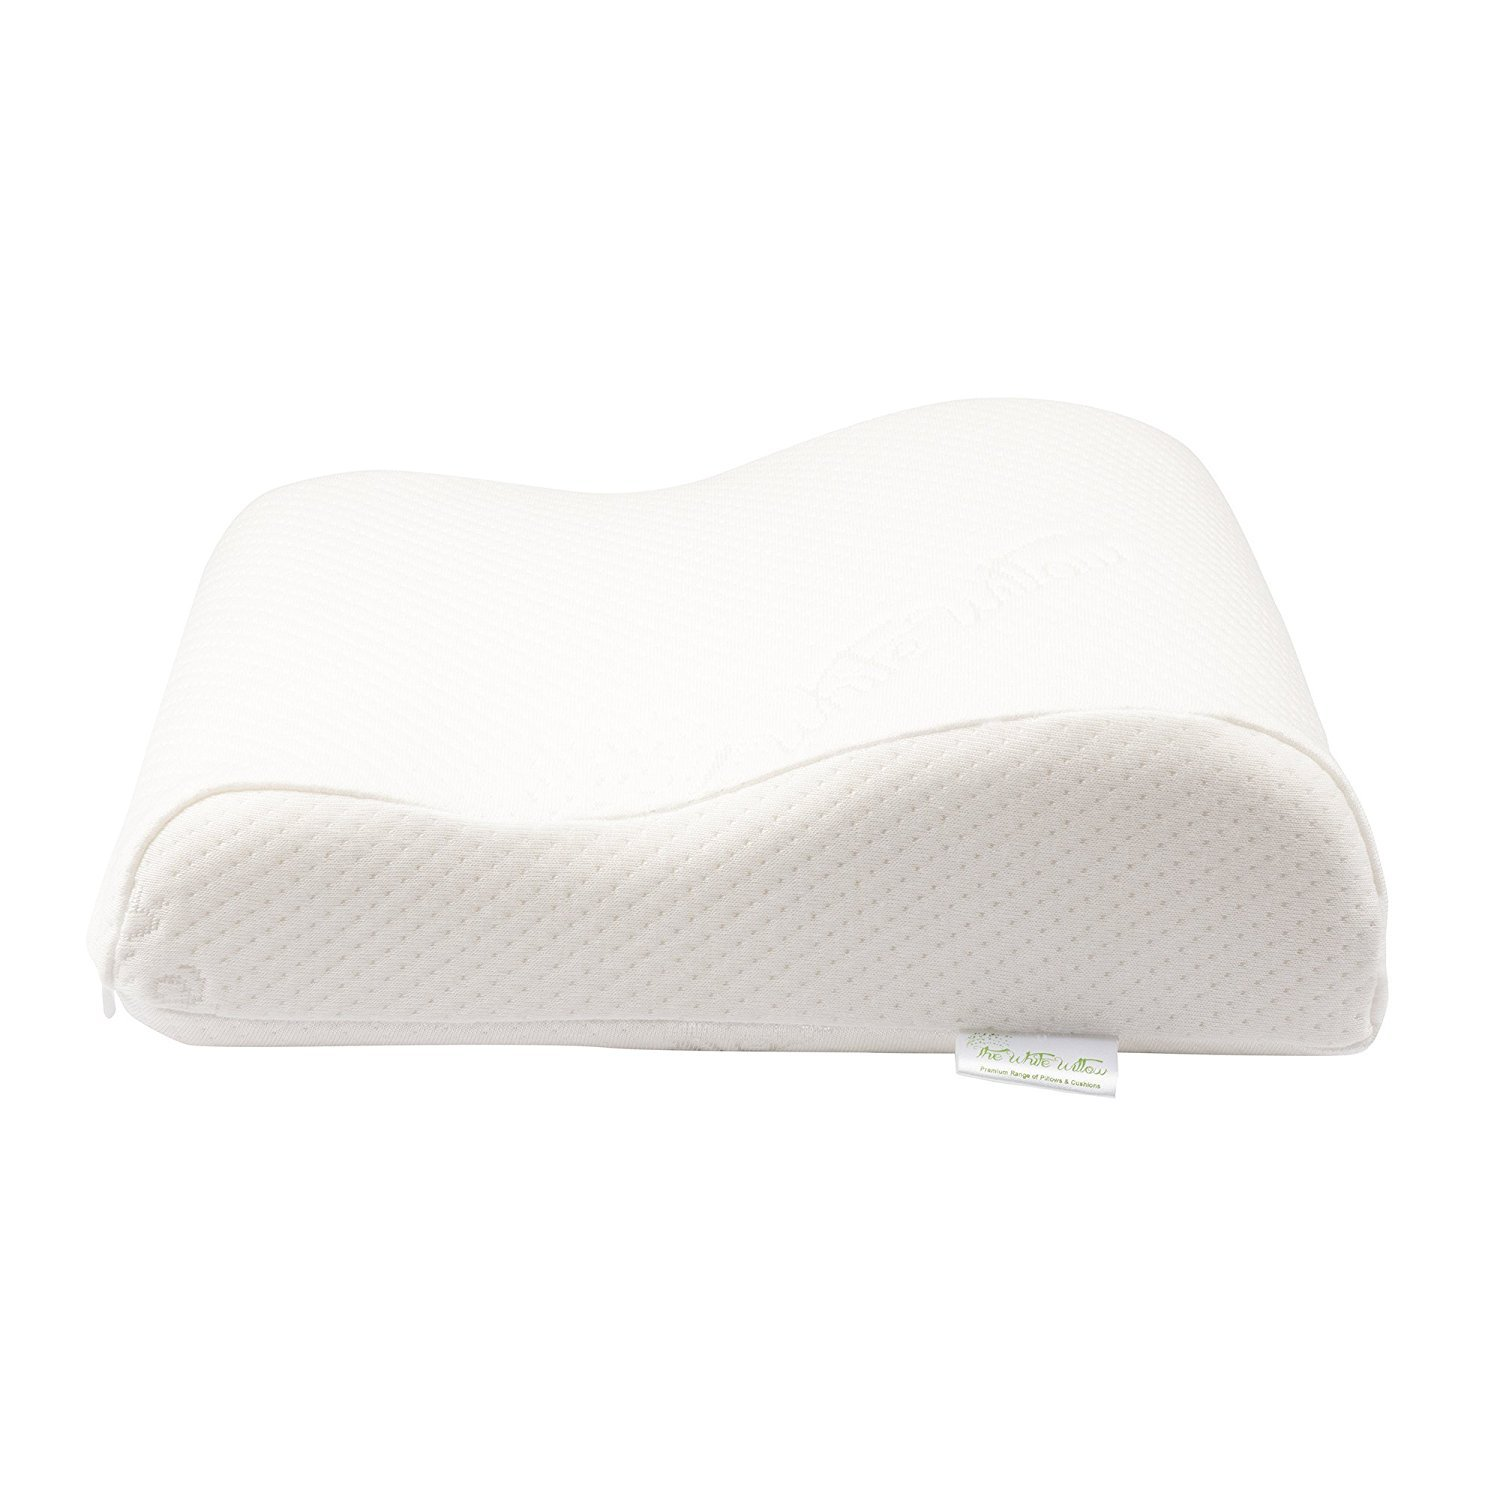 The White Willow Soft Conforming Memory Foam Mini Contour Travel Cushion Cervical Support For Side Sleeper Pillow 11'' x 9'' (4, White Reveries), Free Express Shipping